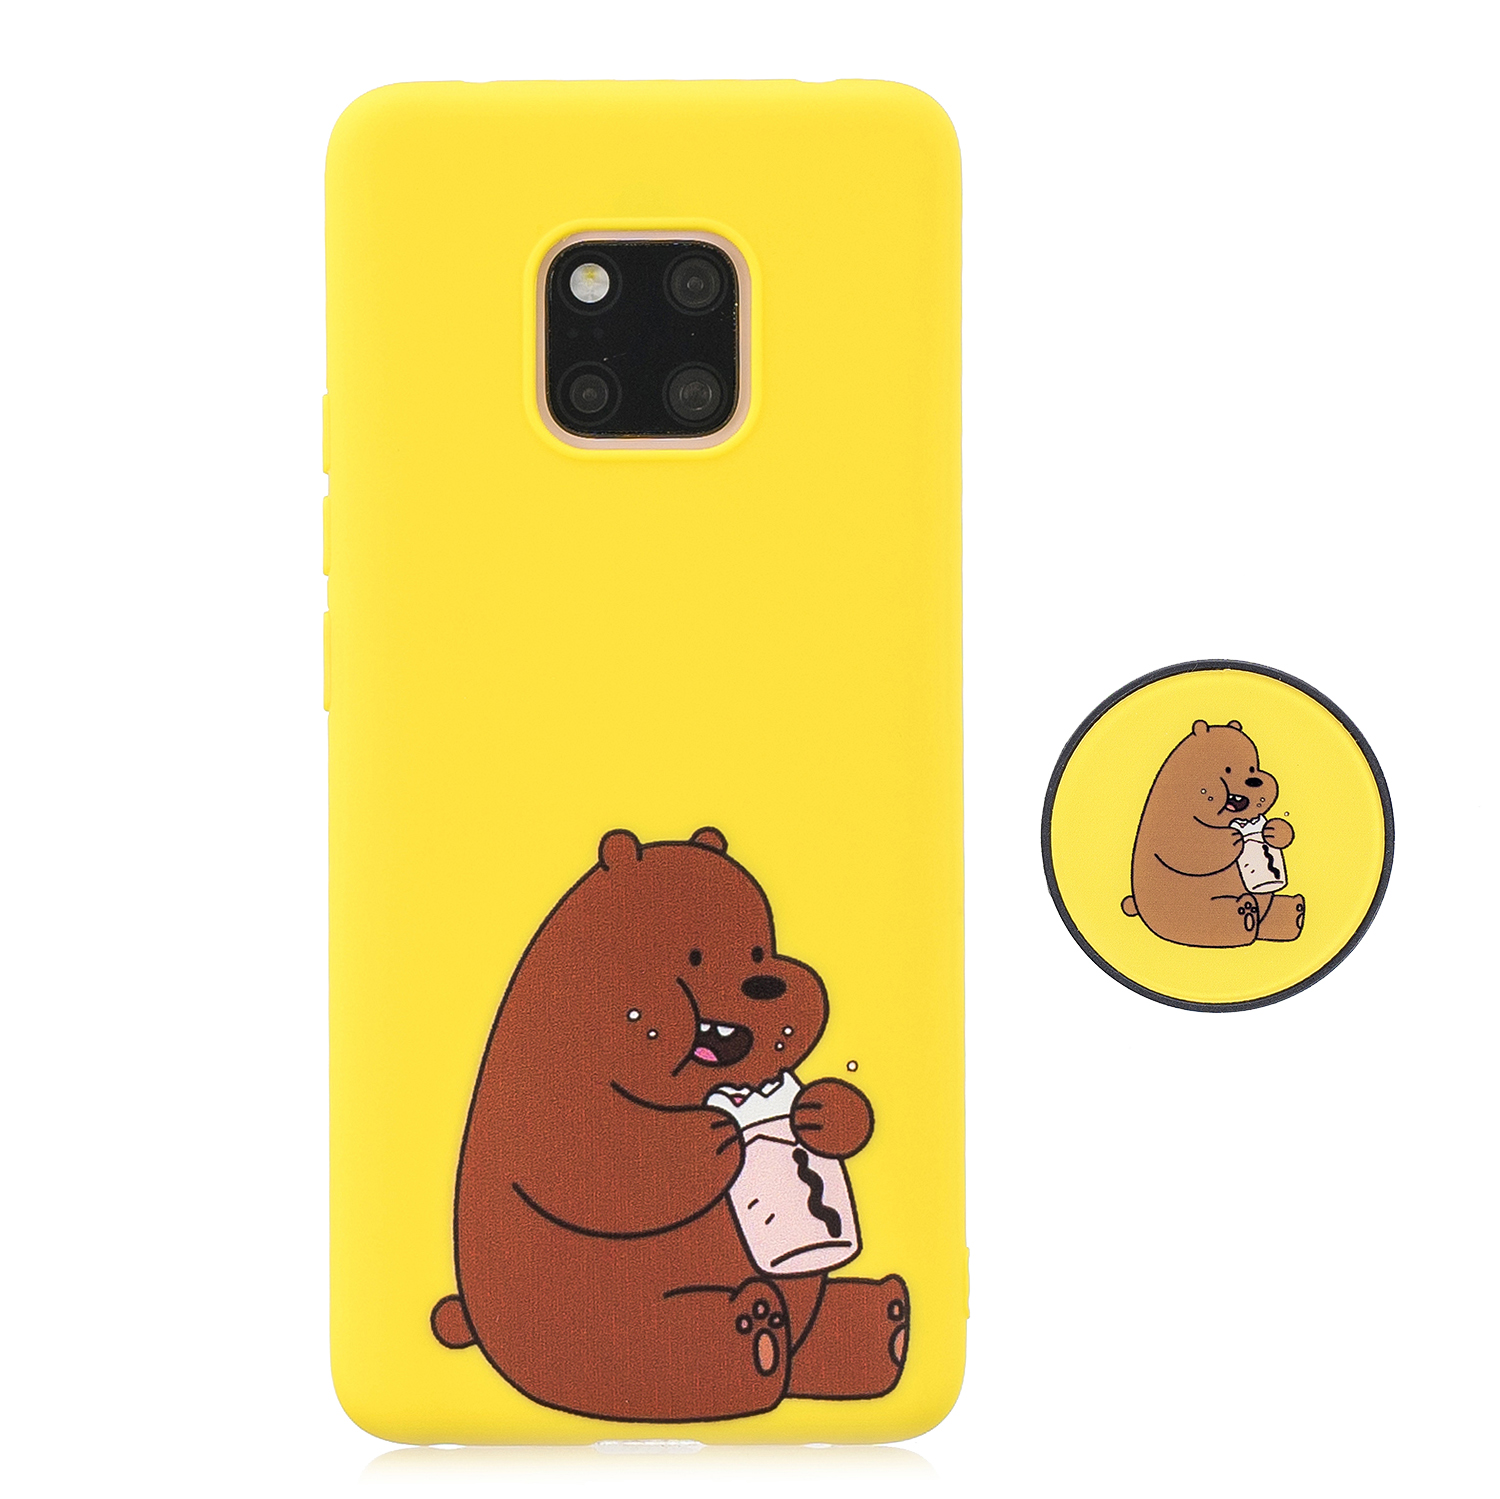 For HUAWEI MATE 20 pro Pure Color Phone Cover Cute Cartoon Phone Case Lightweight Soft TPU Phone Case with Matching Pattern Adjustable Bracket 8